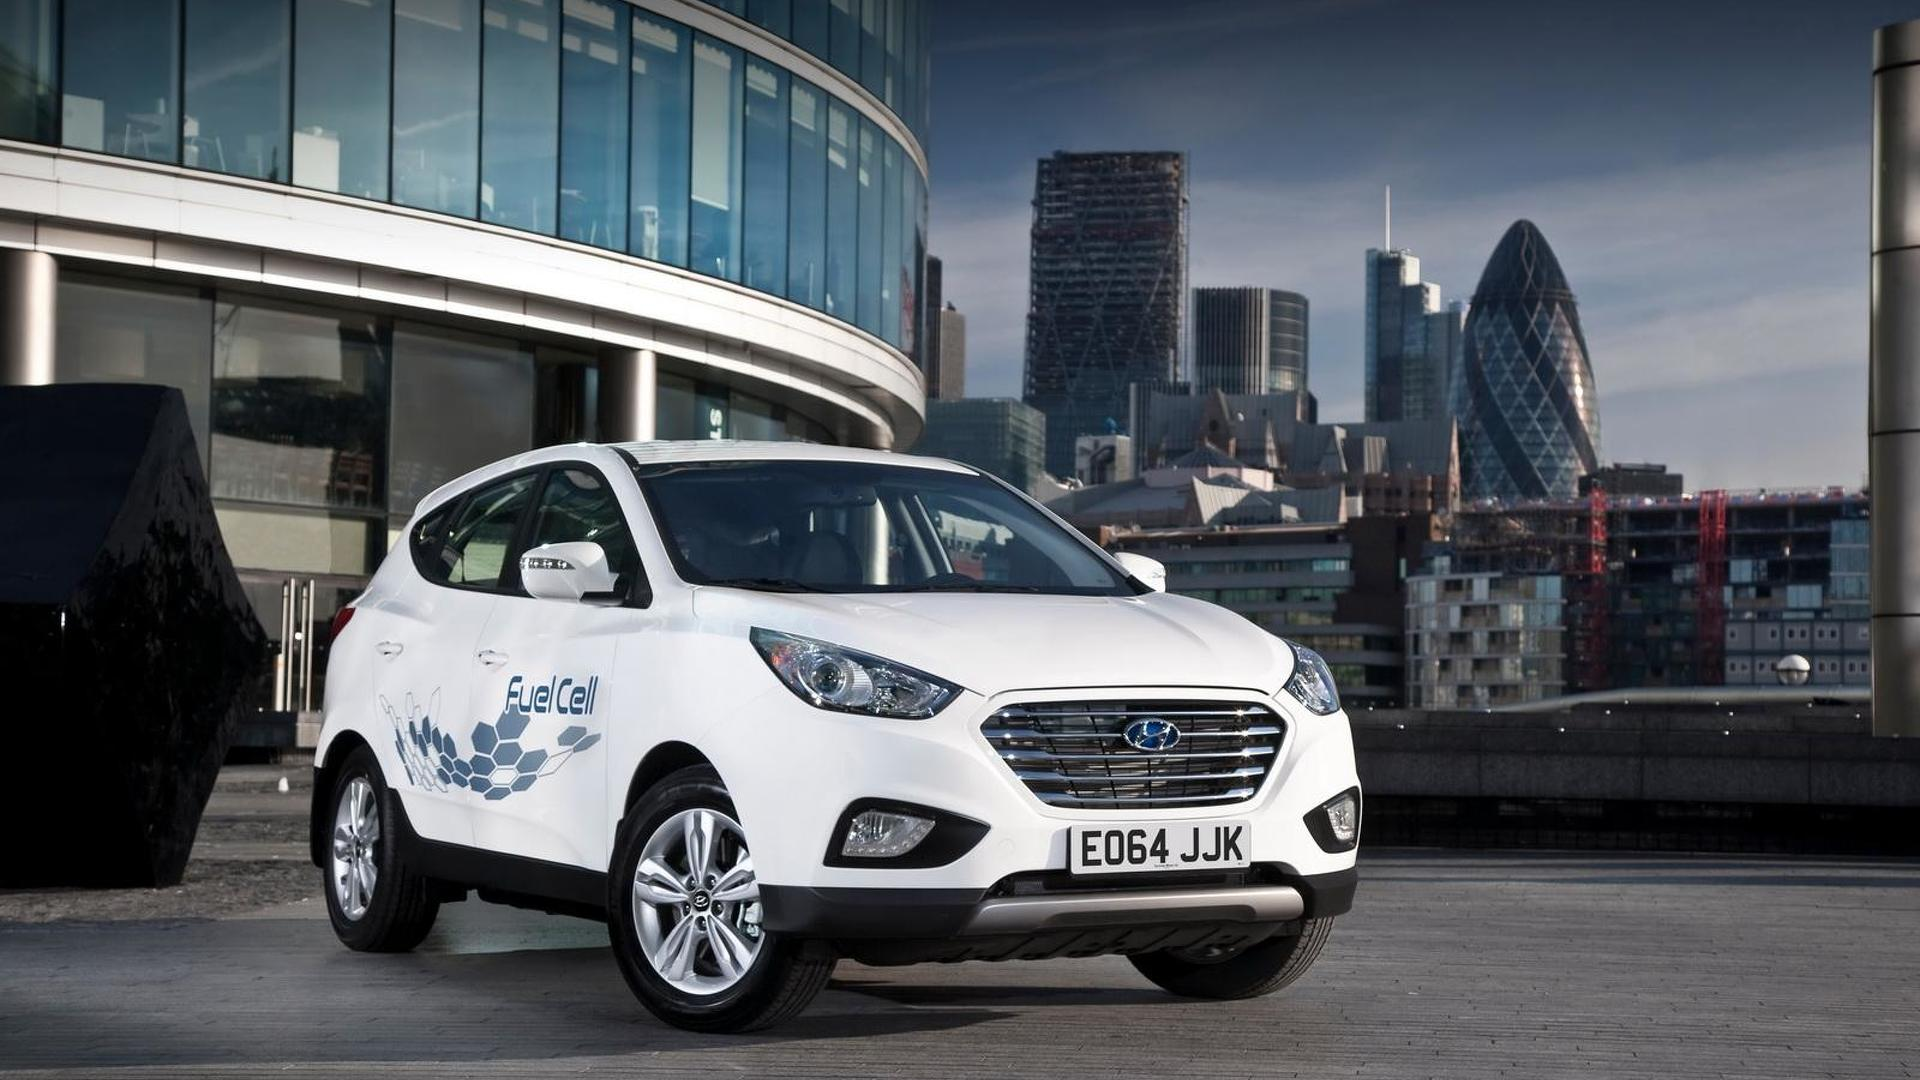 Hyundai ix35 Fuel Cell priced from £53,105 taking into account £15,000 incentive